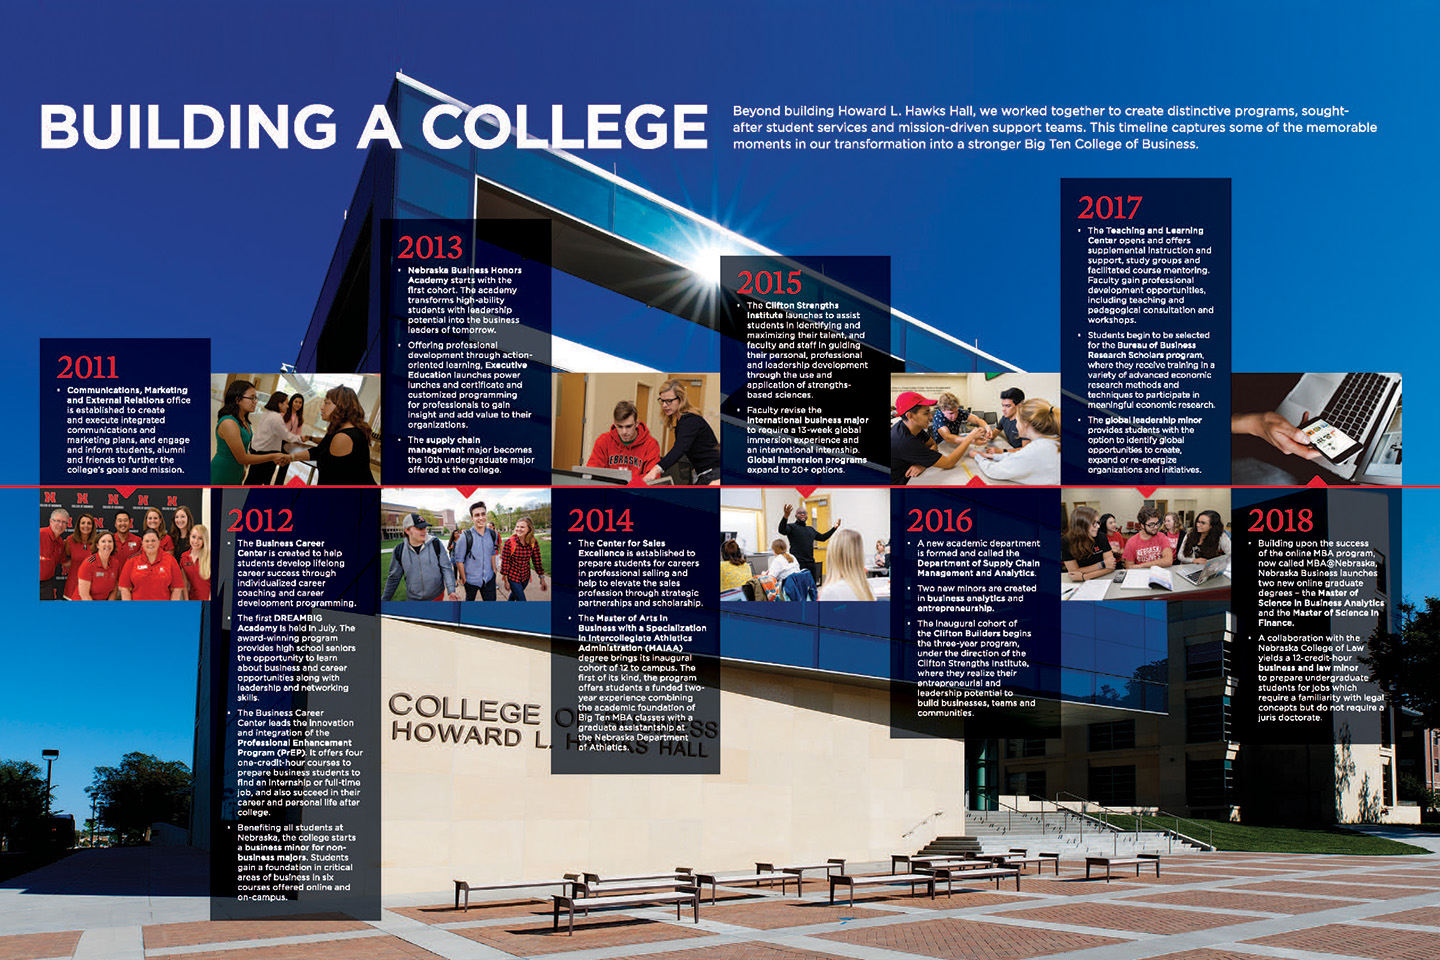 Building a College